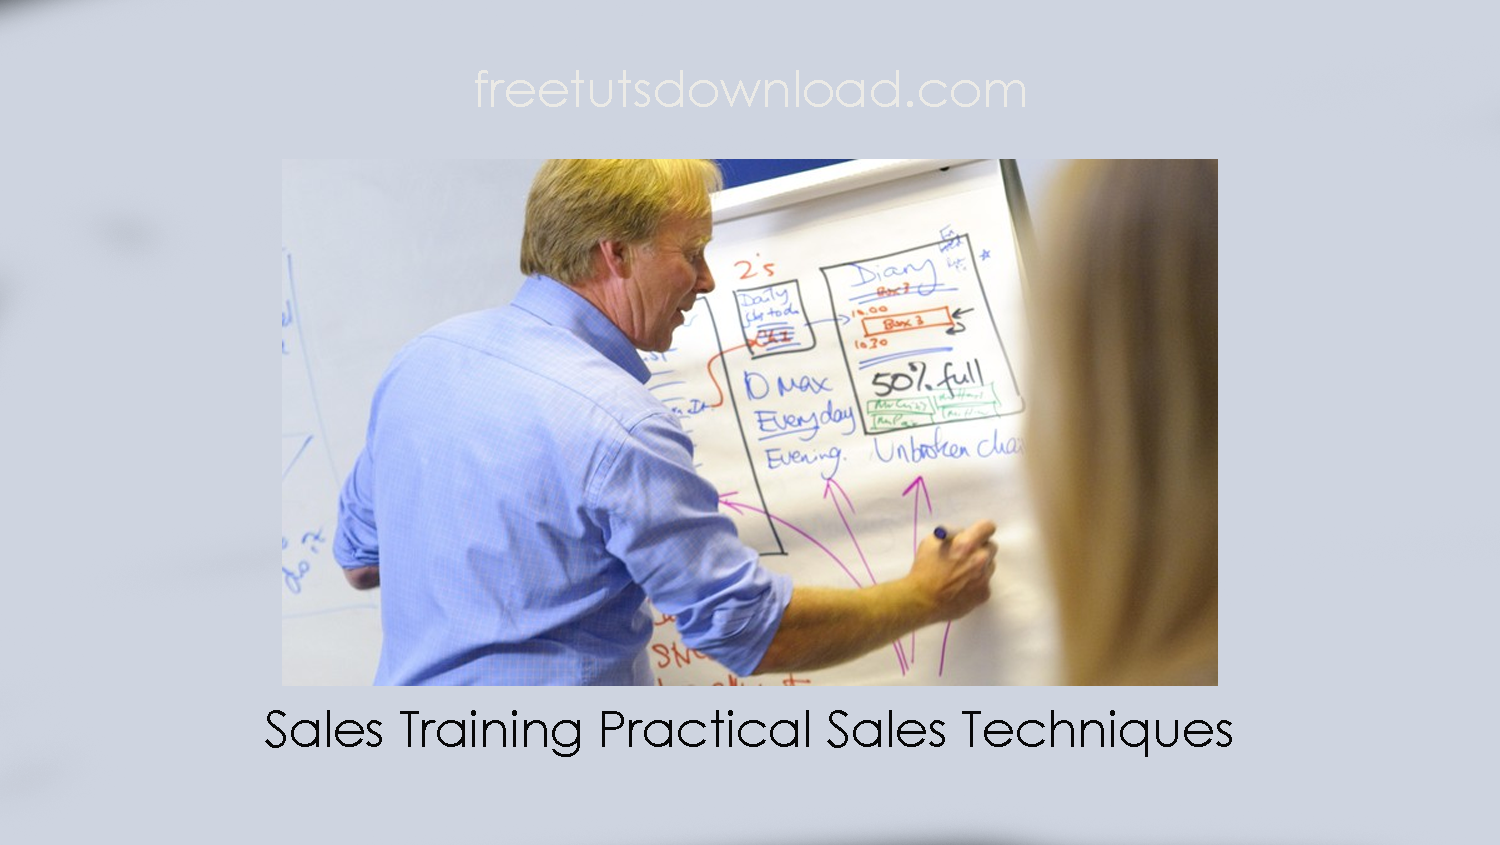 Sales Training Practical Sales Techniques Free Download